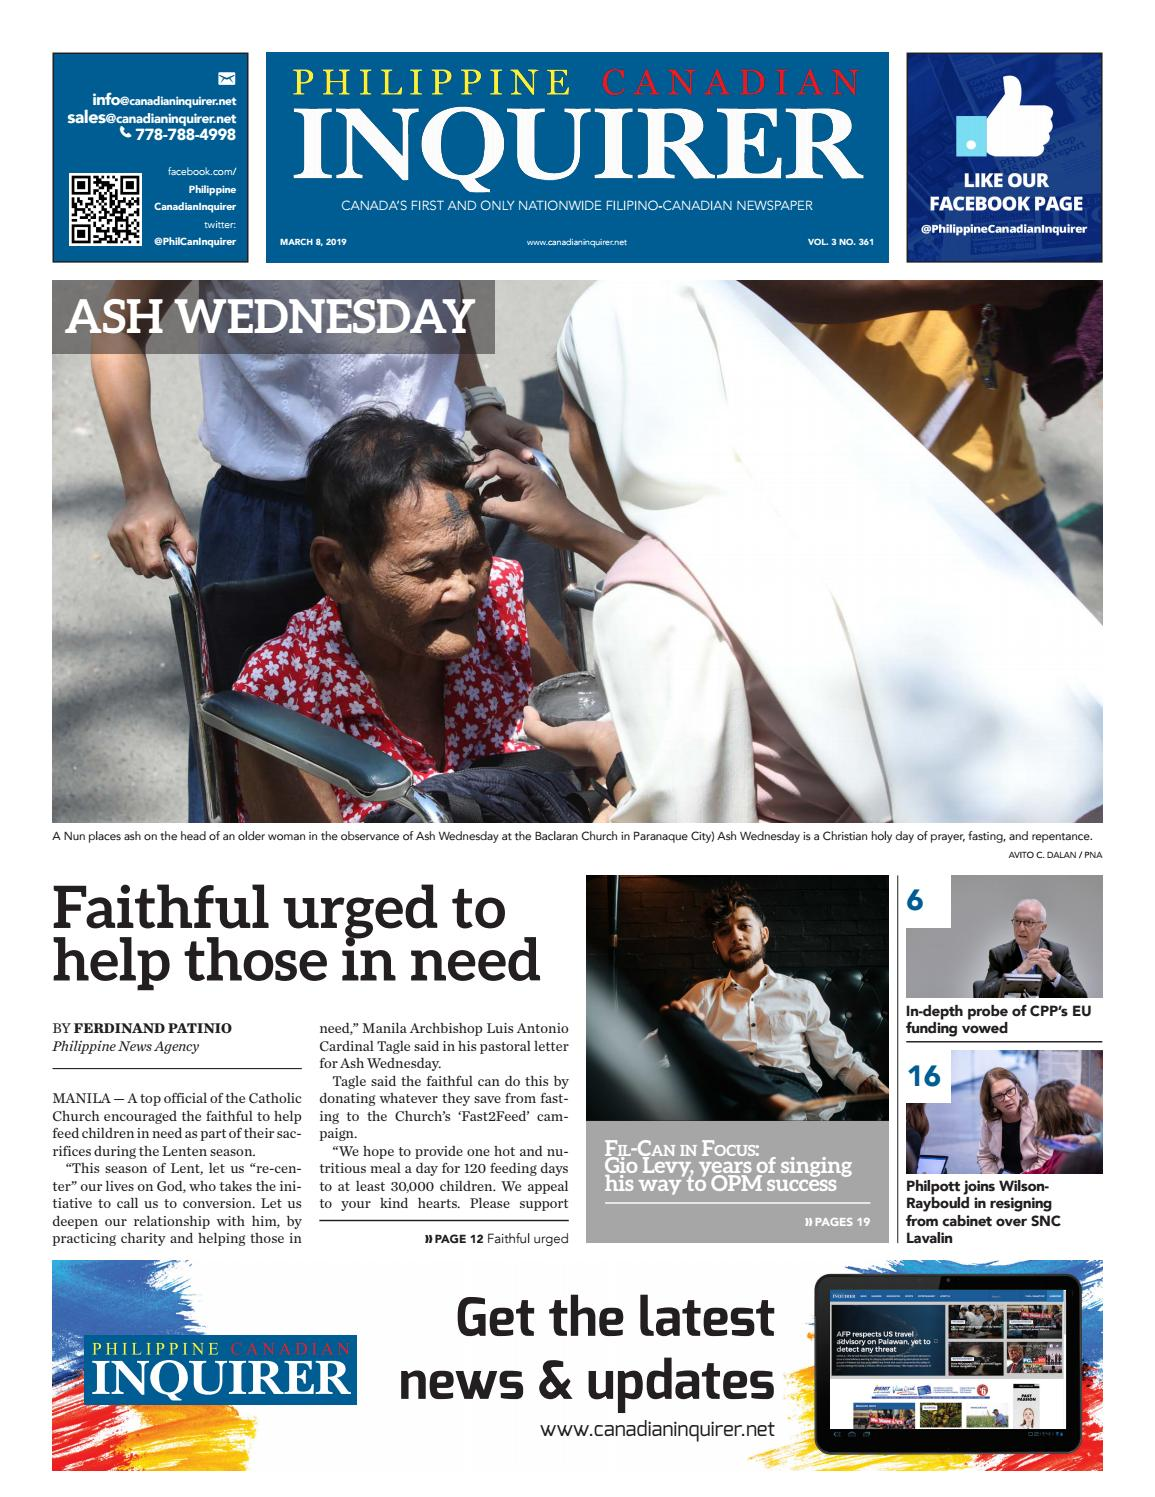 Philippine Canadian Inquirer #361 by Philippine Canadian Inquirer